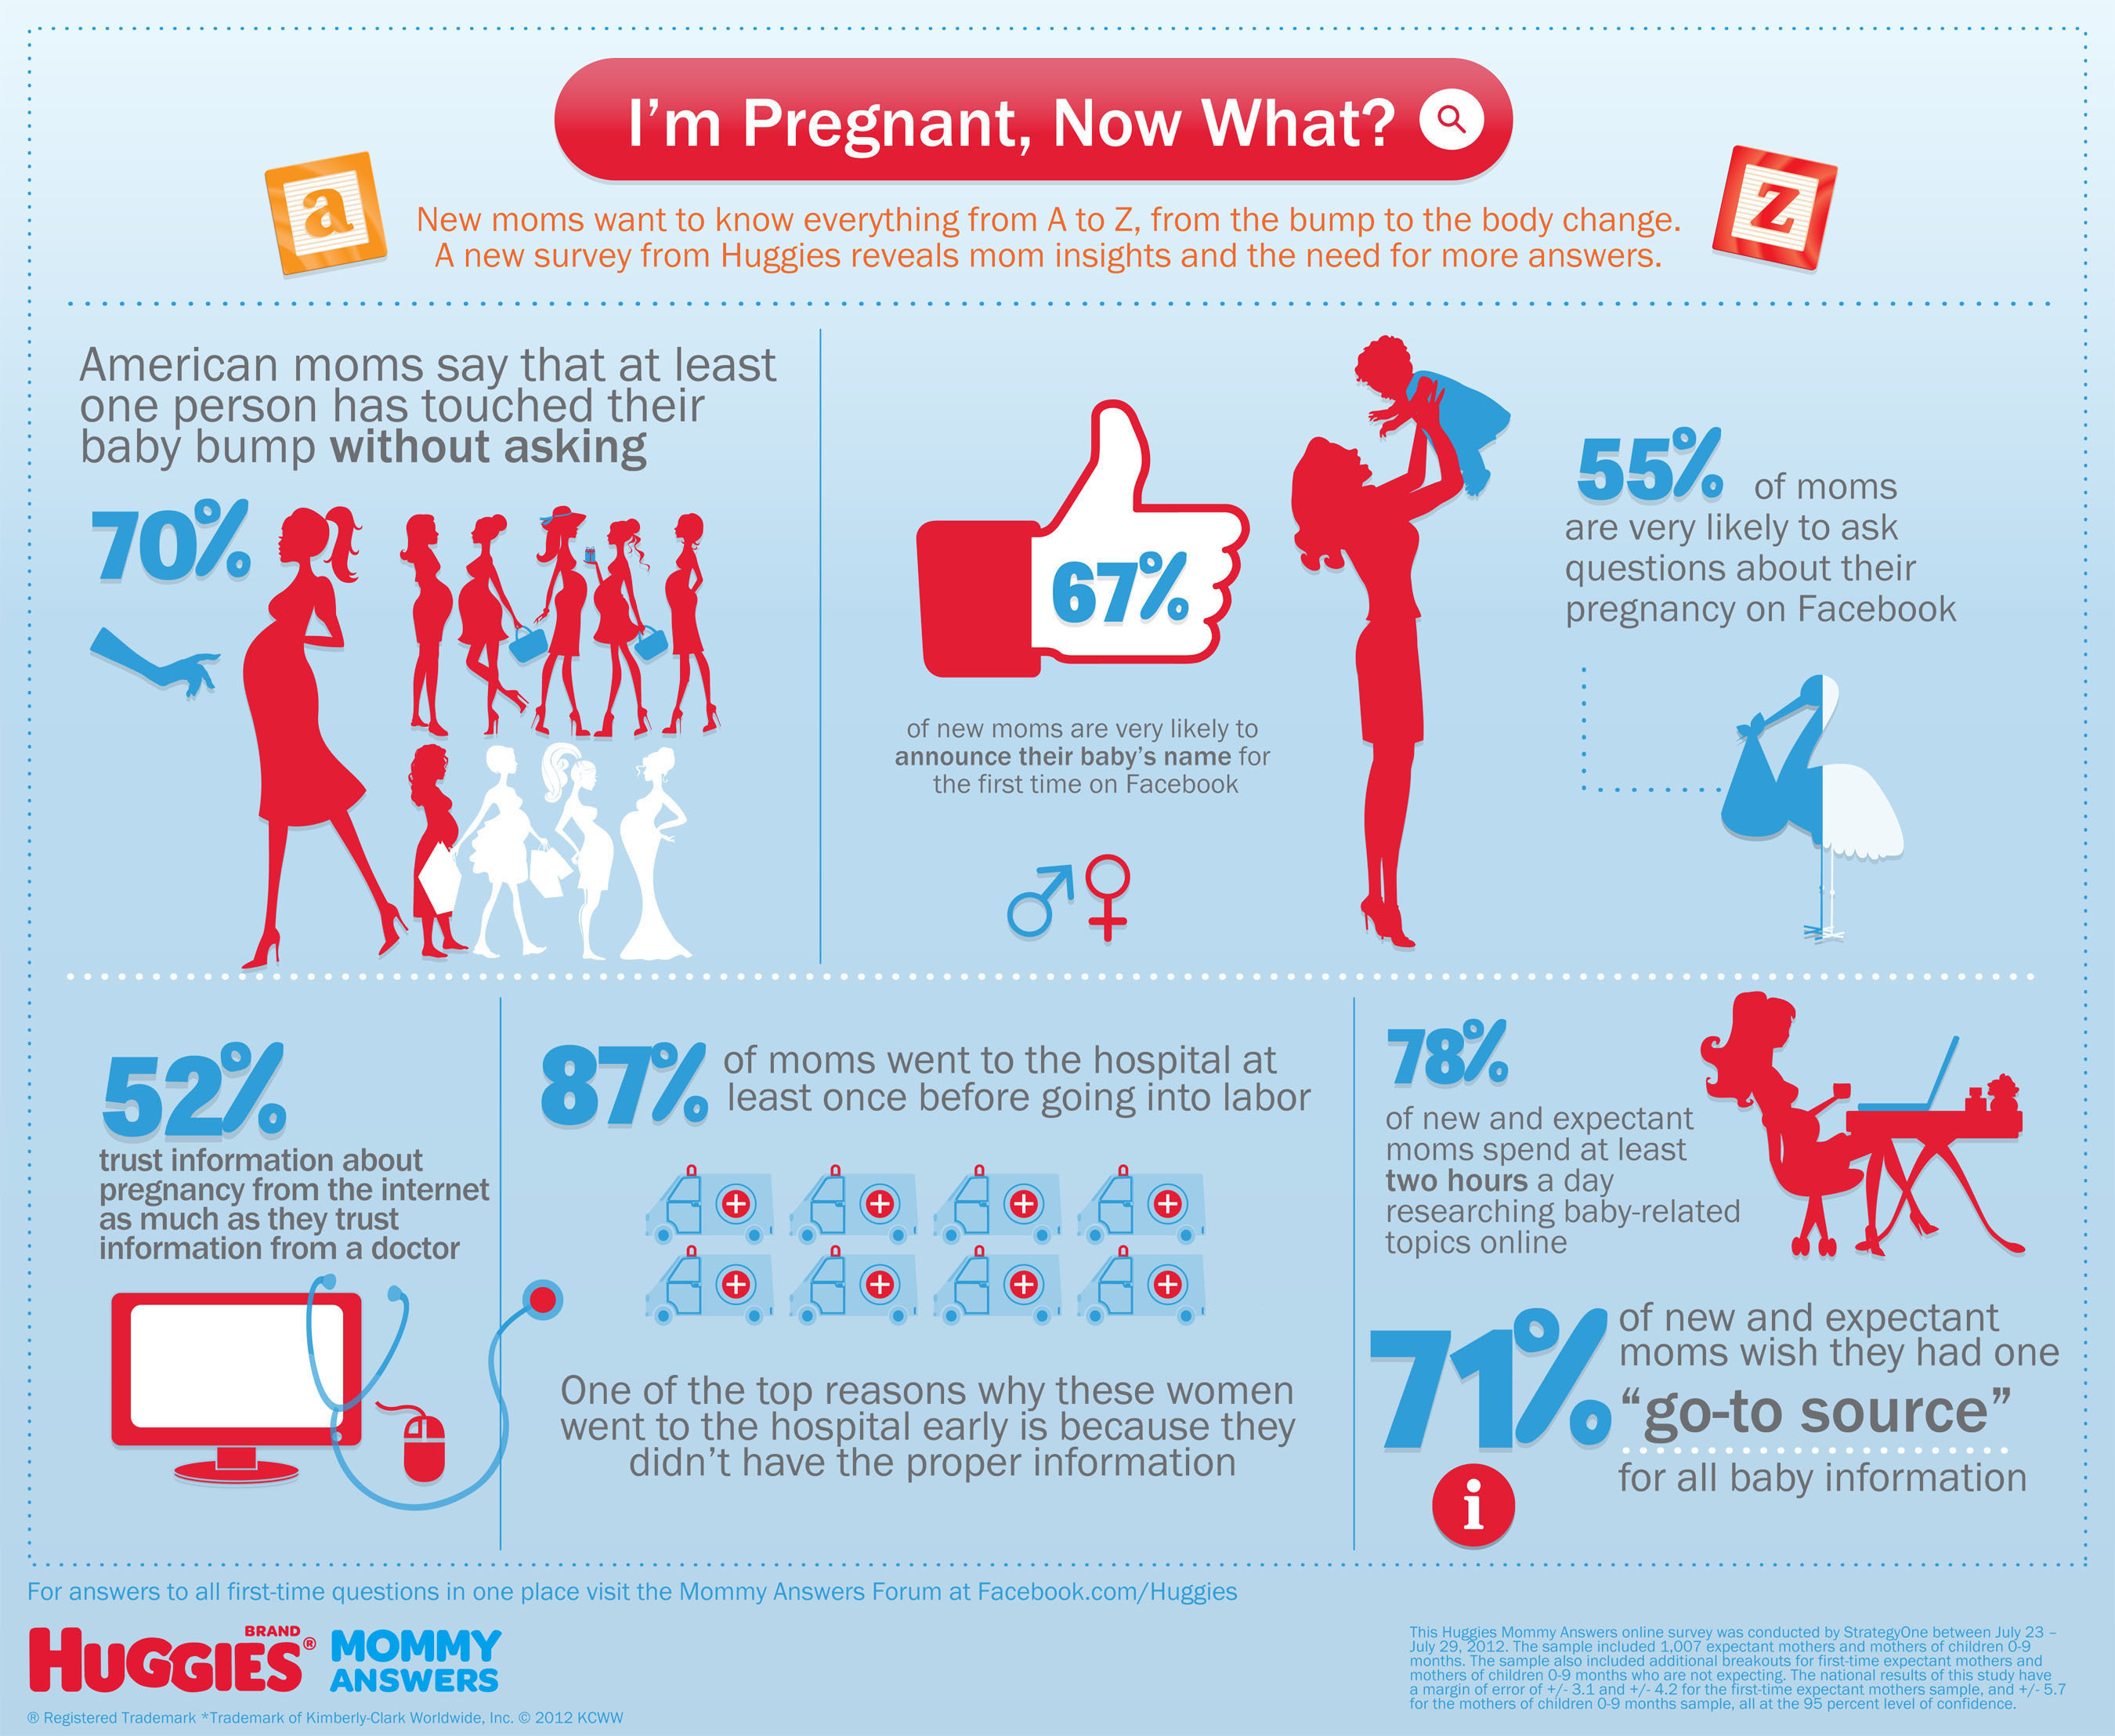 "71% of New and Expectant Moms Wish They Had One ""Go-To Source"" for All Baby Information. I'm Pregnant, Now What?  (PRNewsFoto/Huggies)"